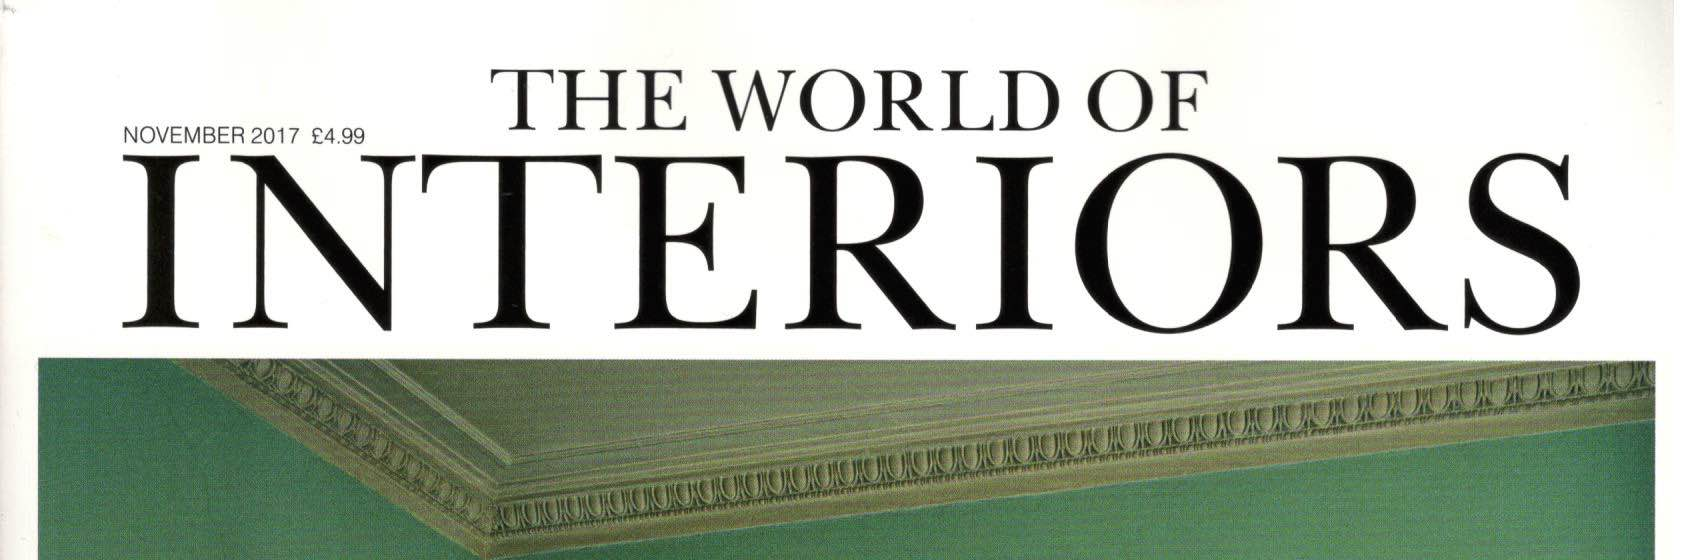 The World of Interiors, November 2017